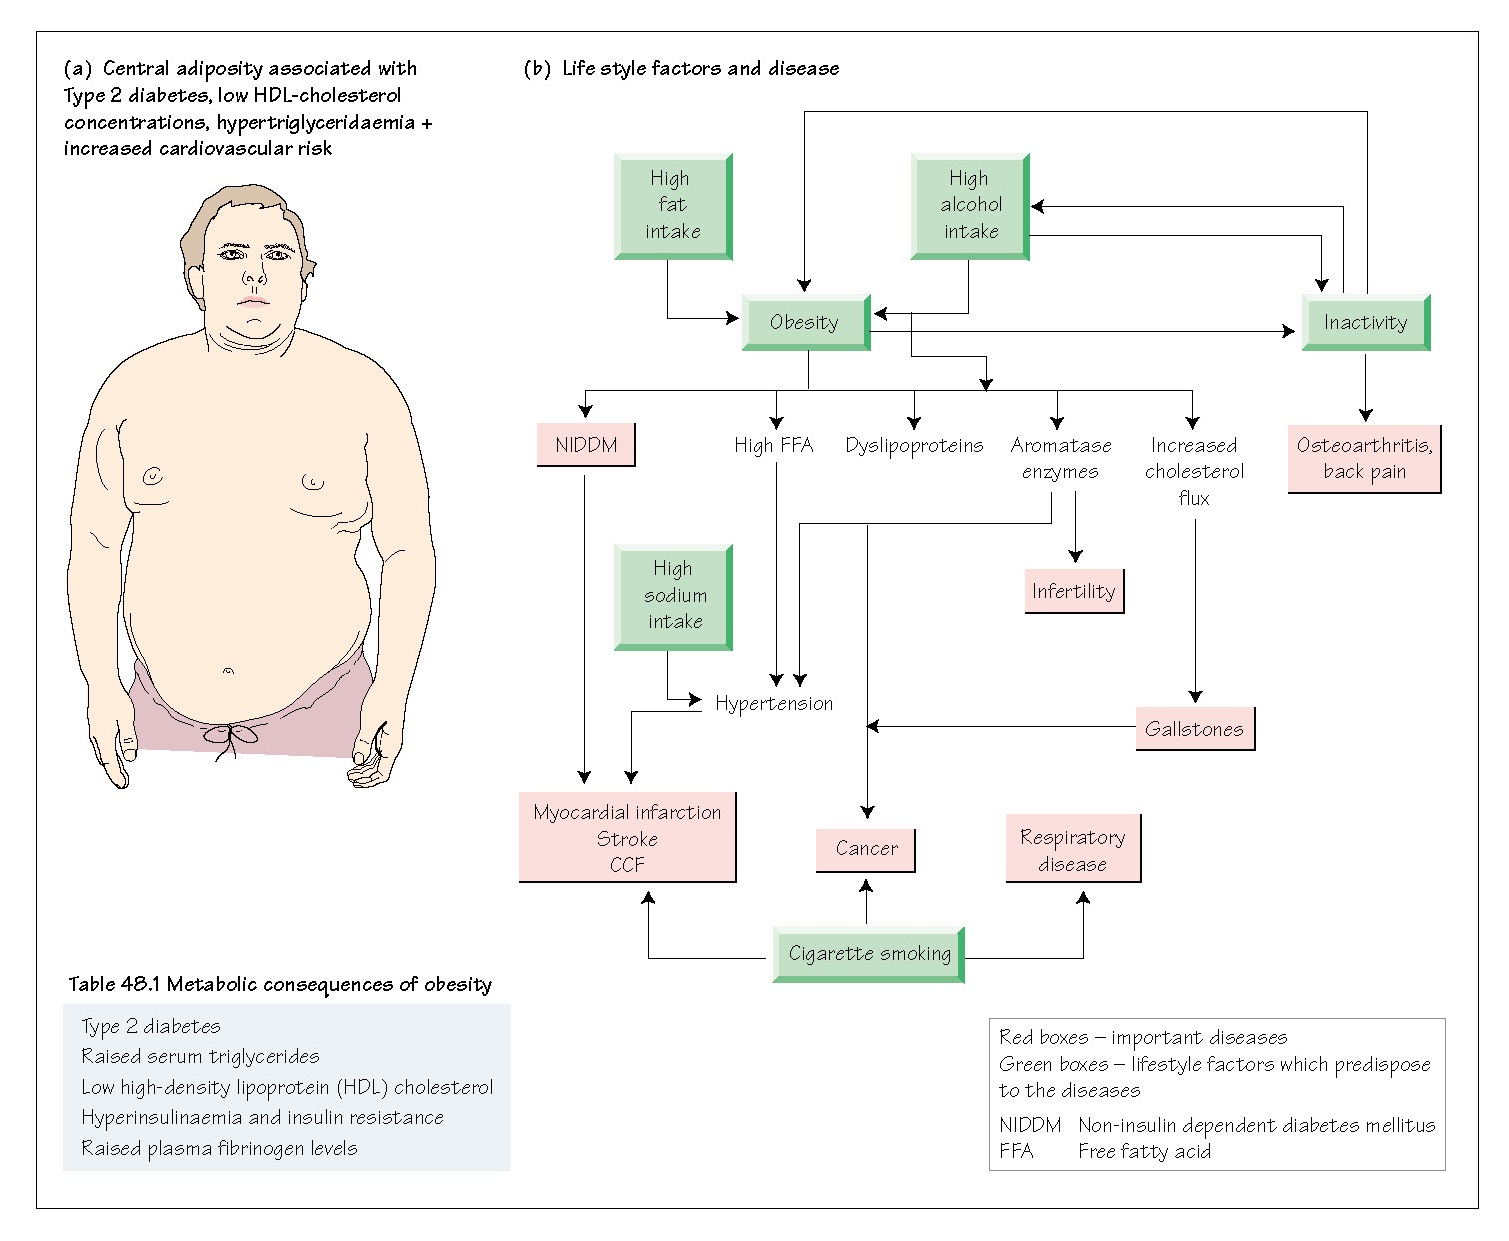 Obesity: III Insulin Resistance and Endocrine Complications, Type 2 diabetes